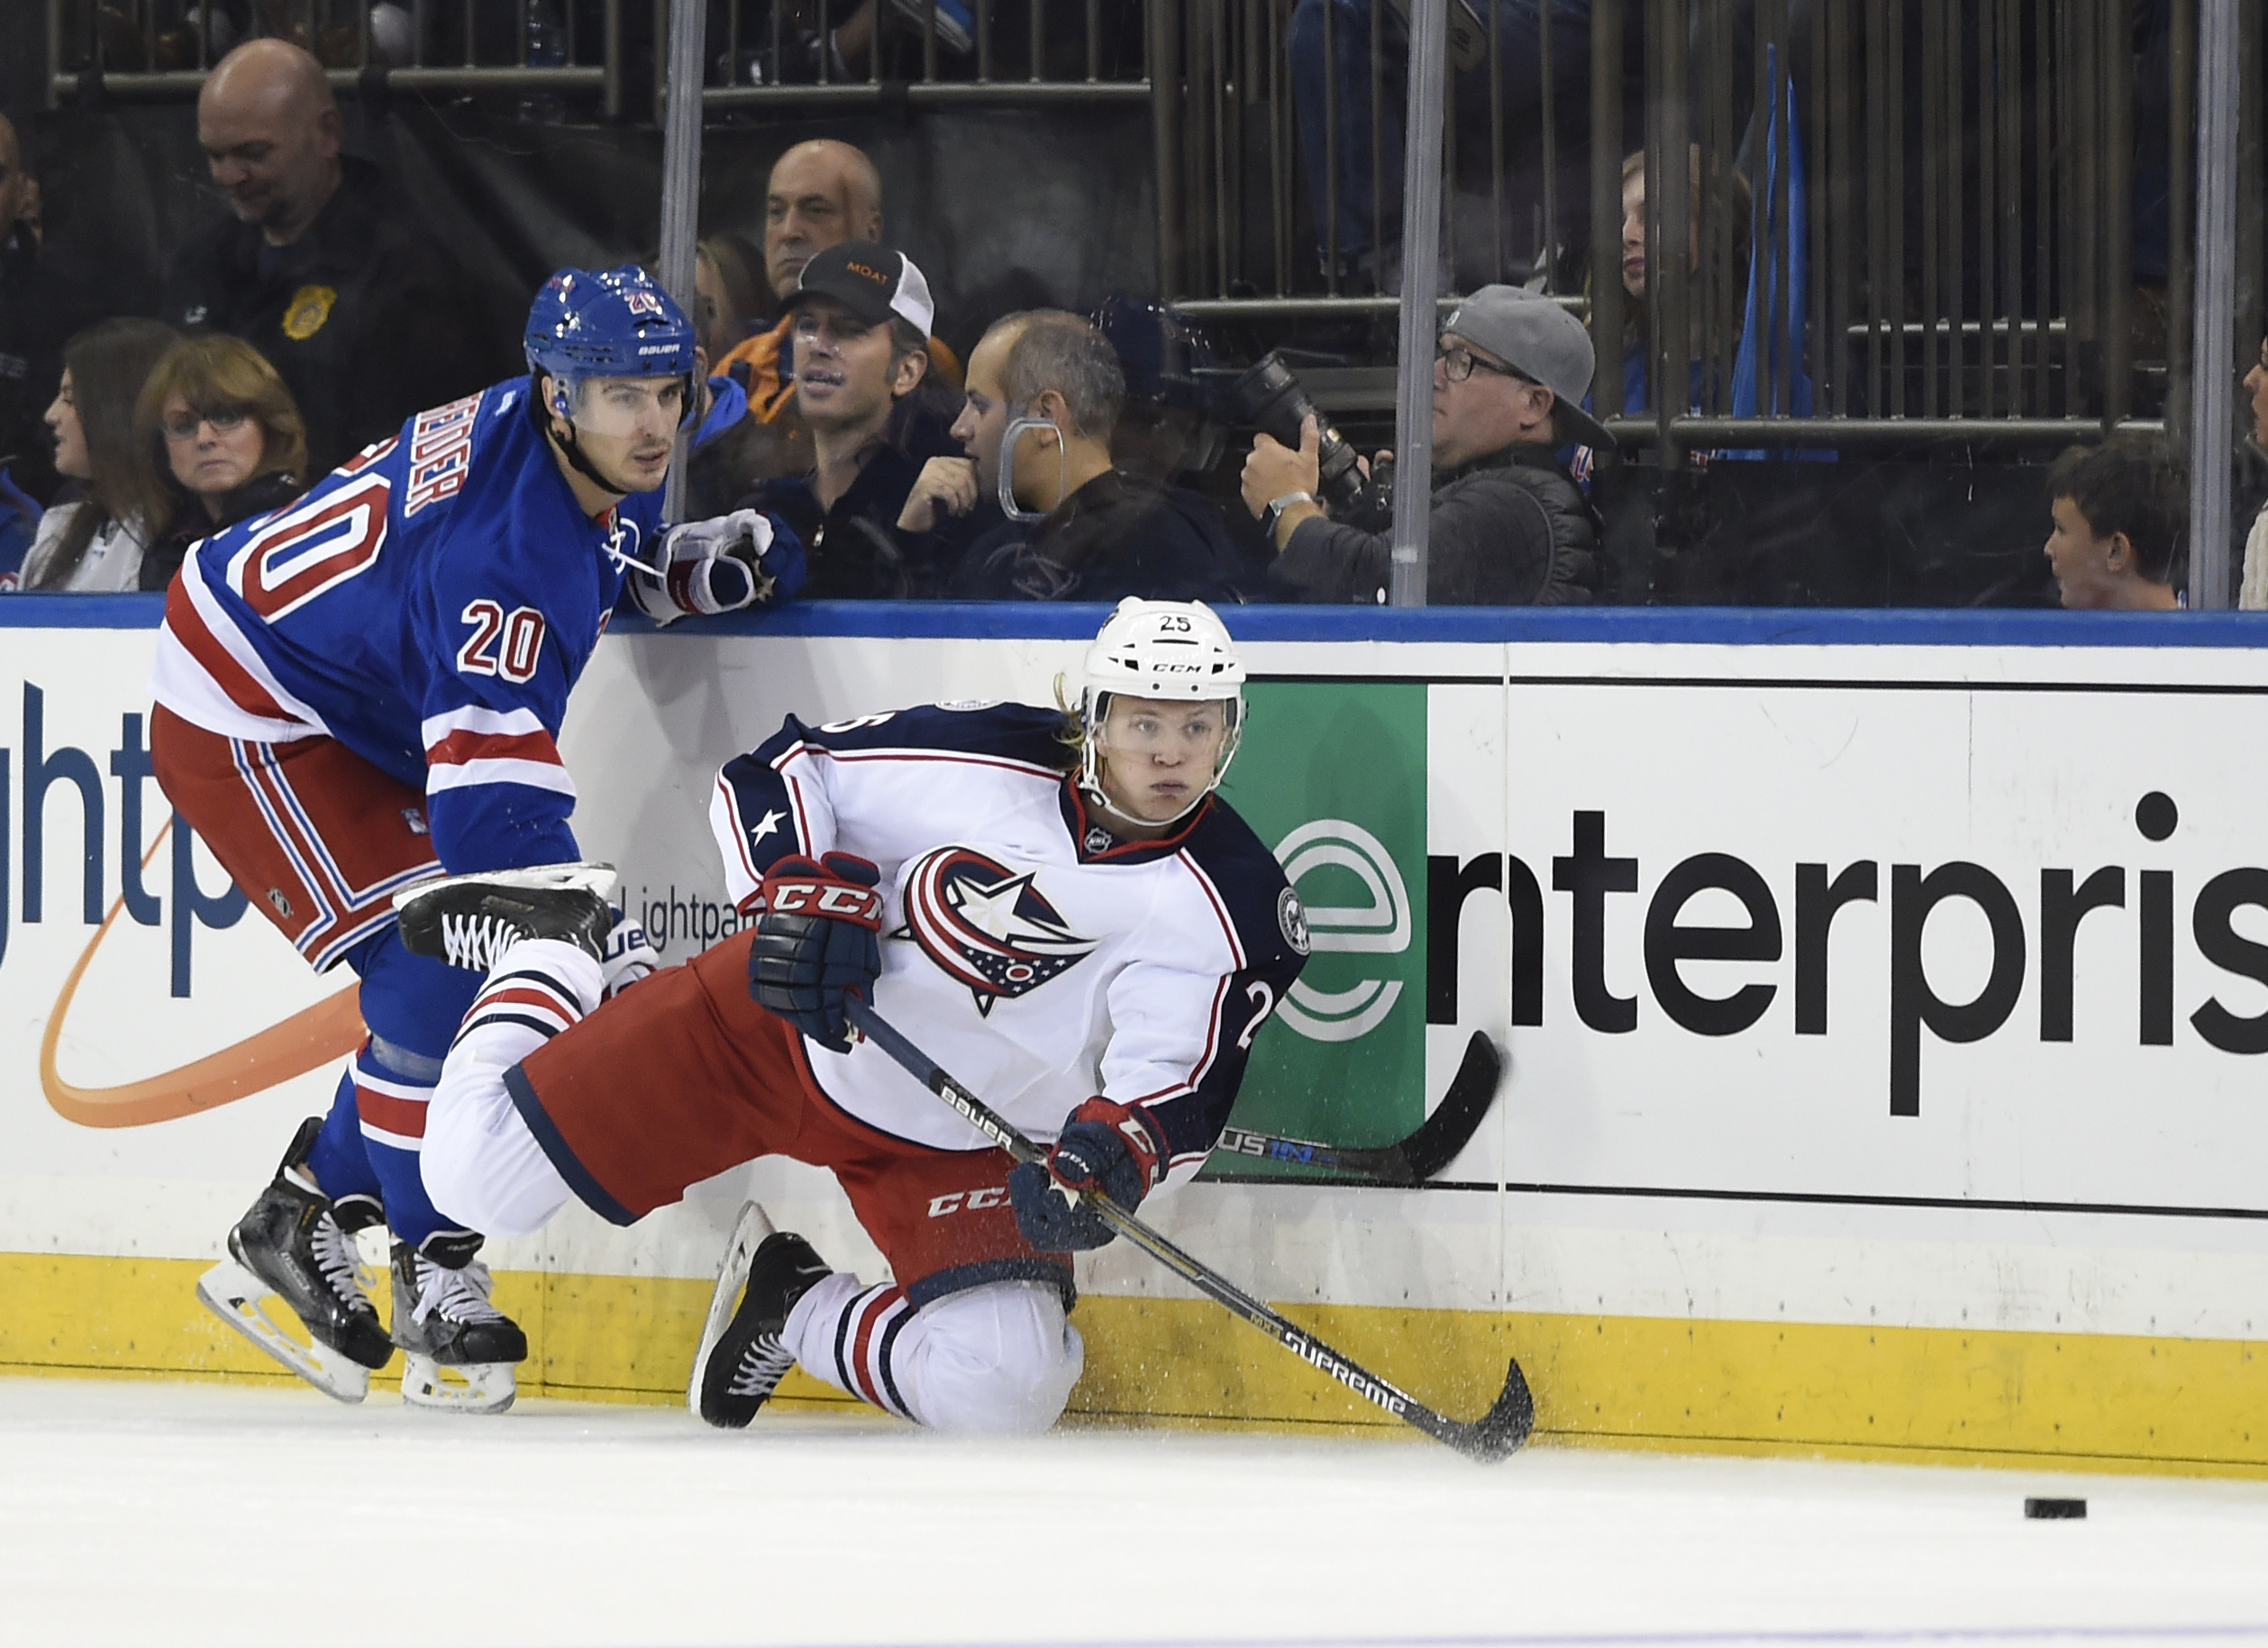 Columbus Blue Jackets center William Karlsson (25) falls to the ice trying to drive the puck away from New York Rangers left wing Chris Kreider (20) during the second period of an NHL hockey game Saturday, Oct. 10, 2015, in New York. (AP Photo/Kathy Kmoni